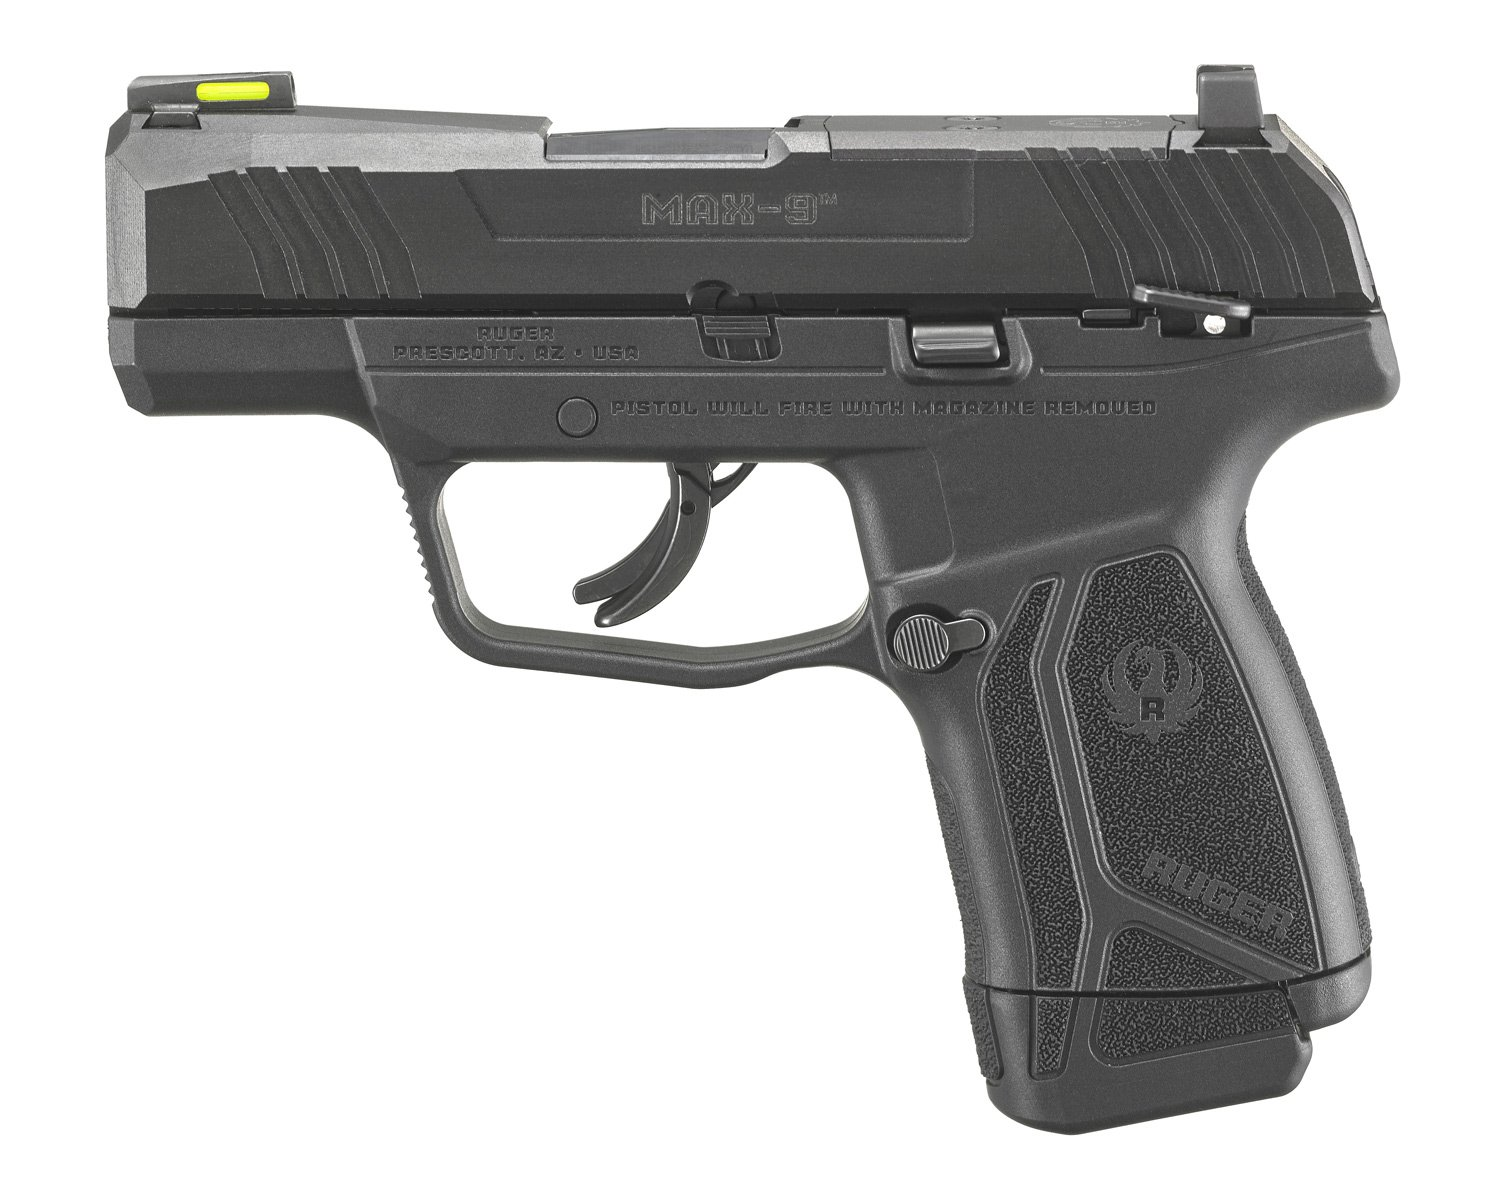 Introducing the NEW Ruger MAX-9 Micro Compact 9mm Pistol